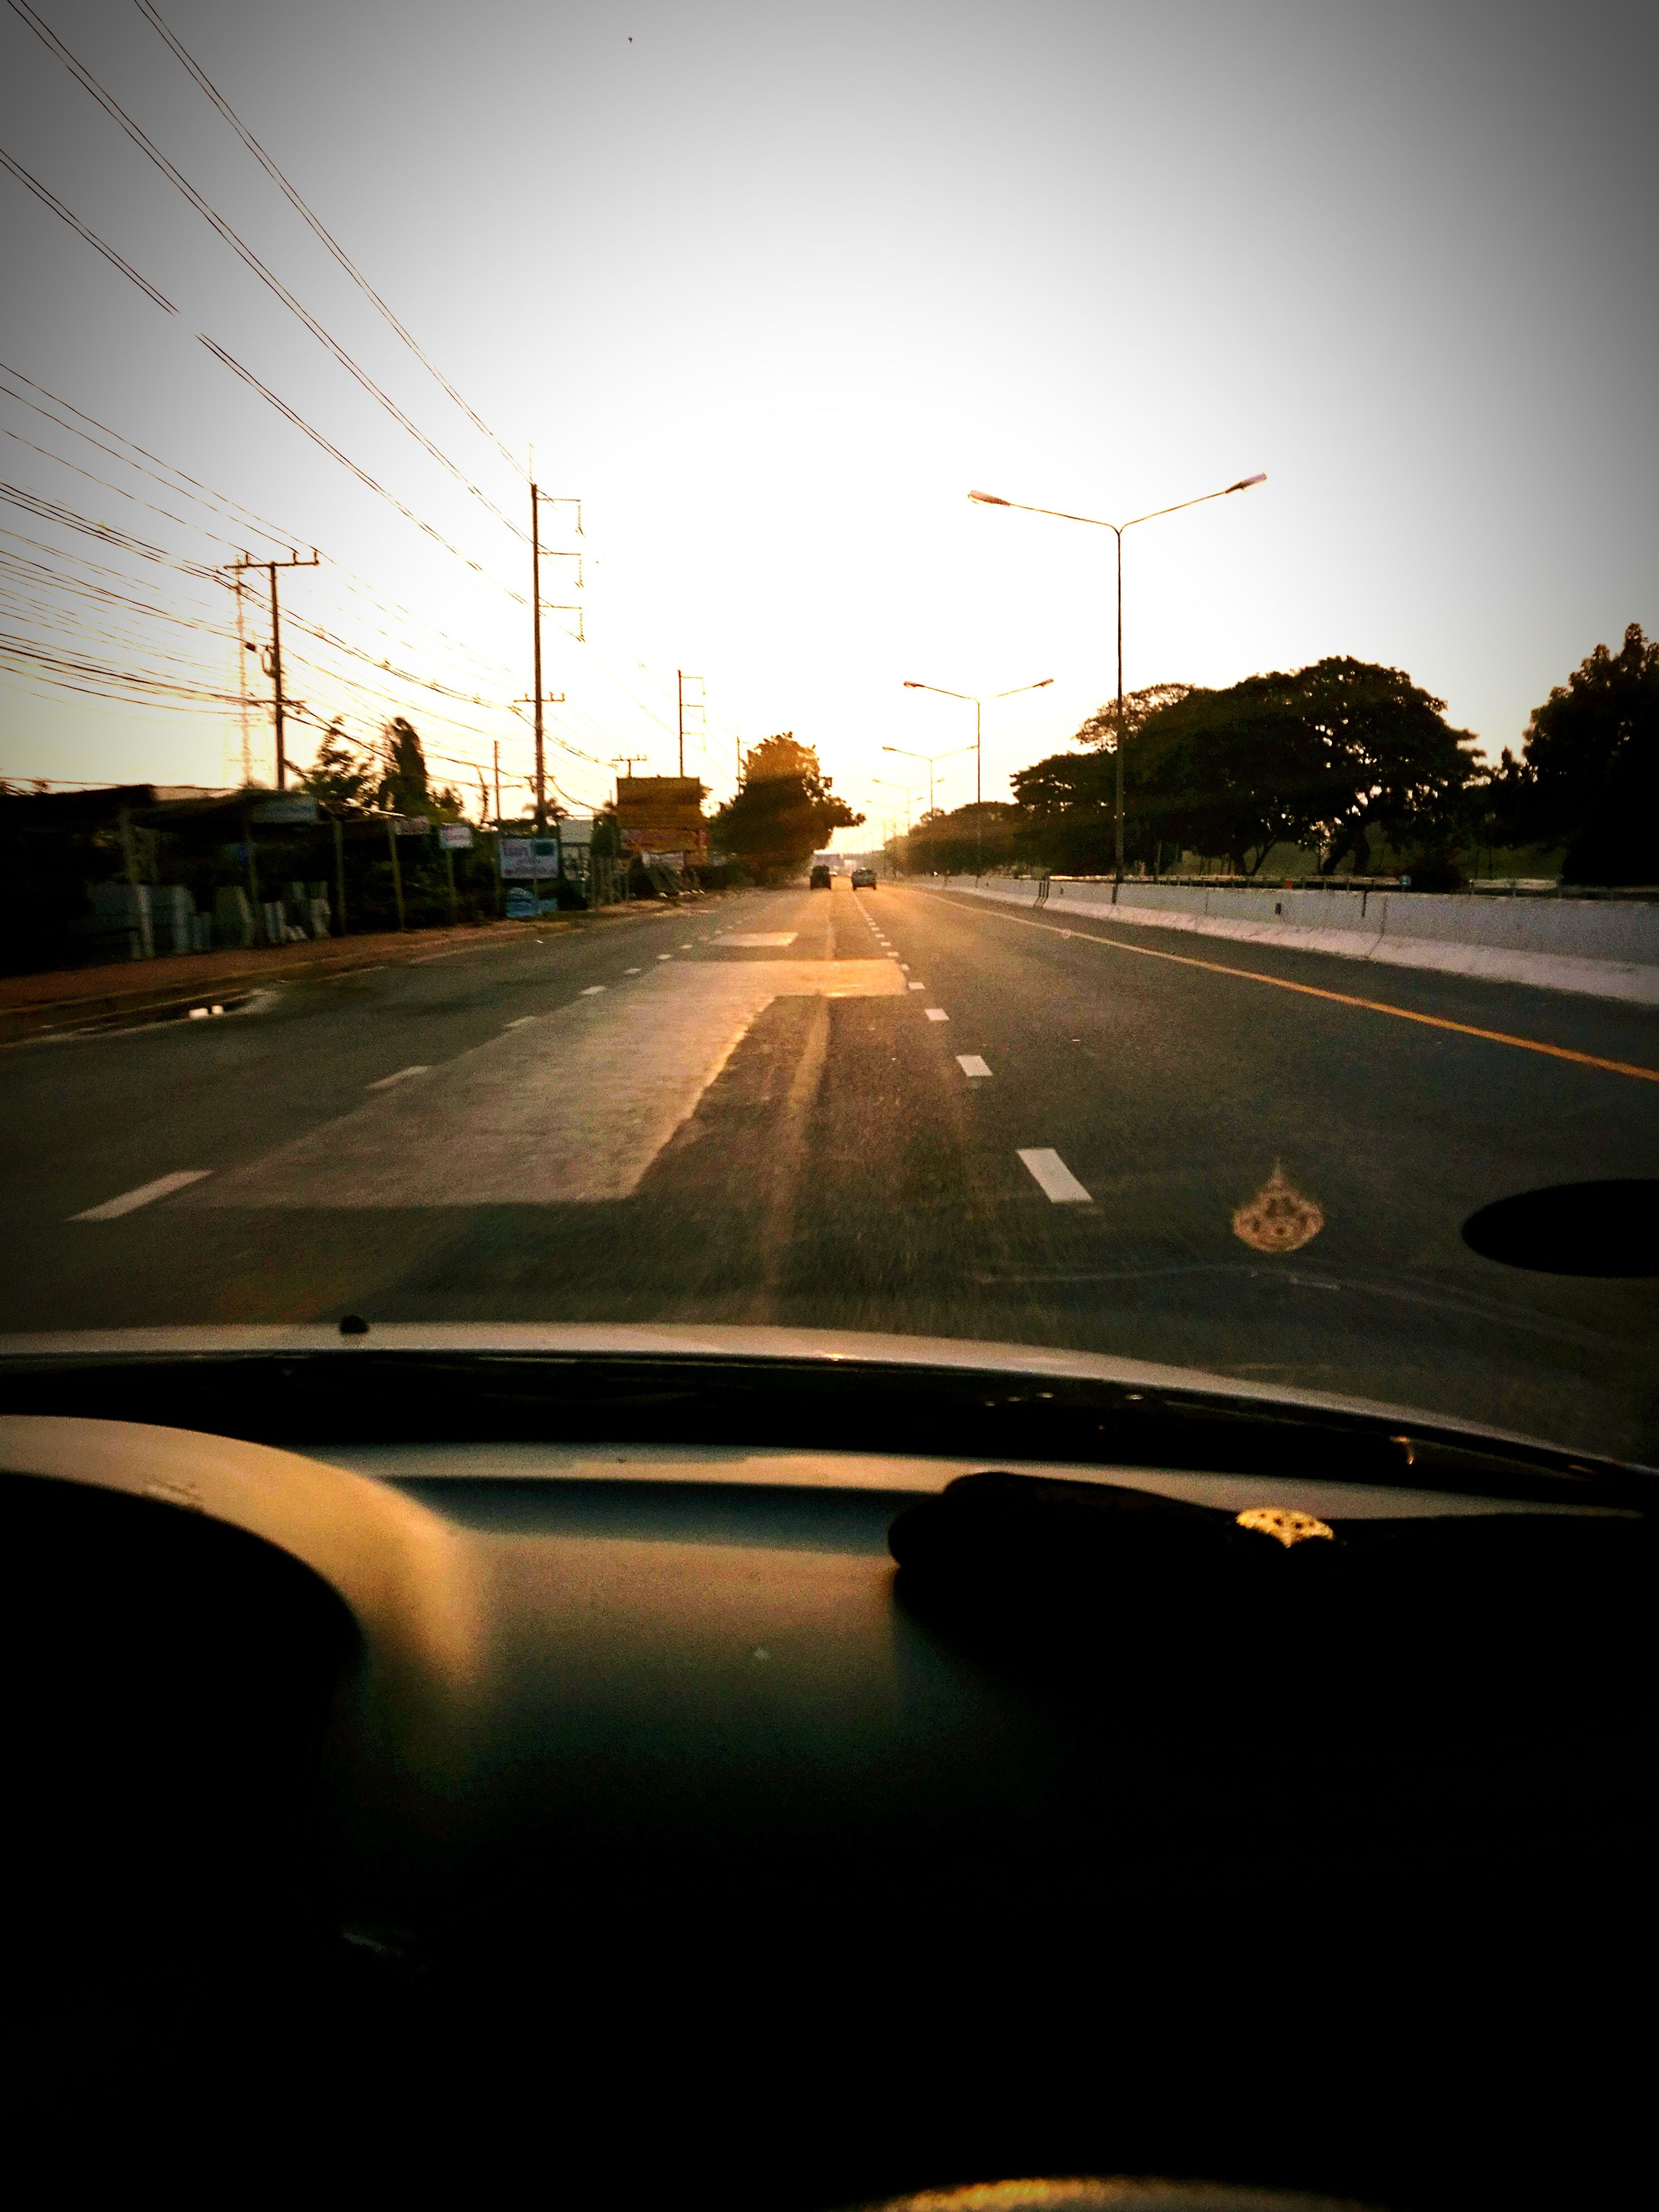 car, transportation, land vehicle, vehicle interior, road, windshield, car interior, mode of transport, car point of view, windscreen, the way forward, driving, sunset, dashboard, no people, sky, day, outdoors